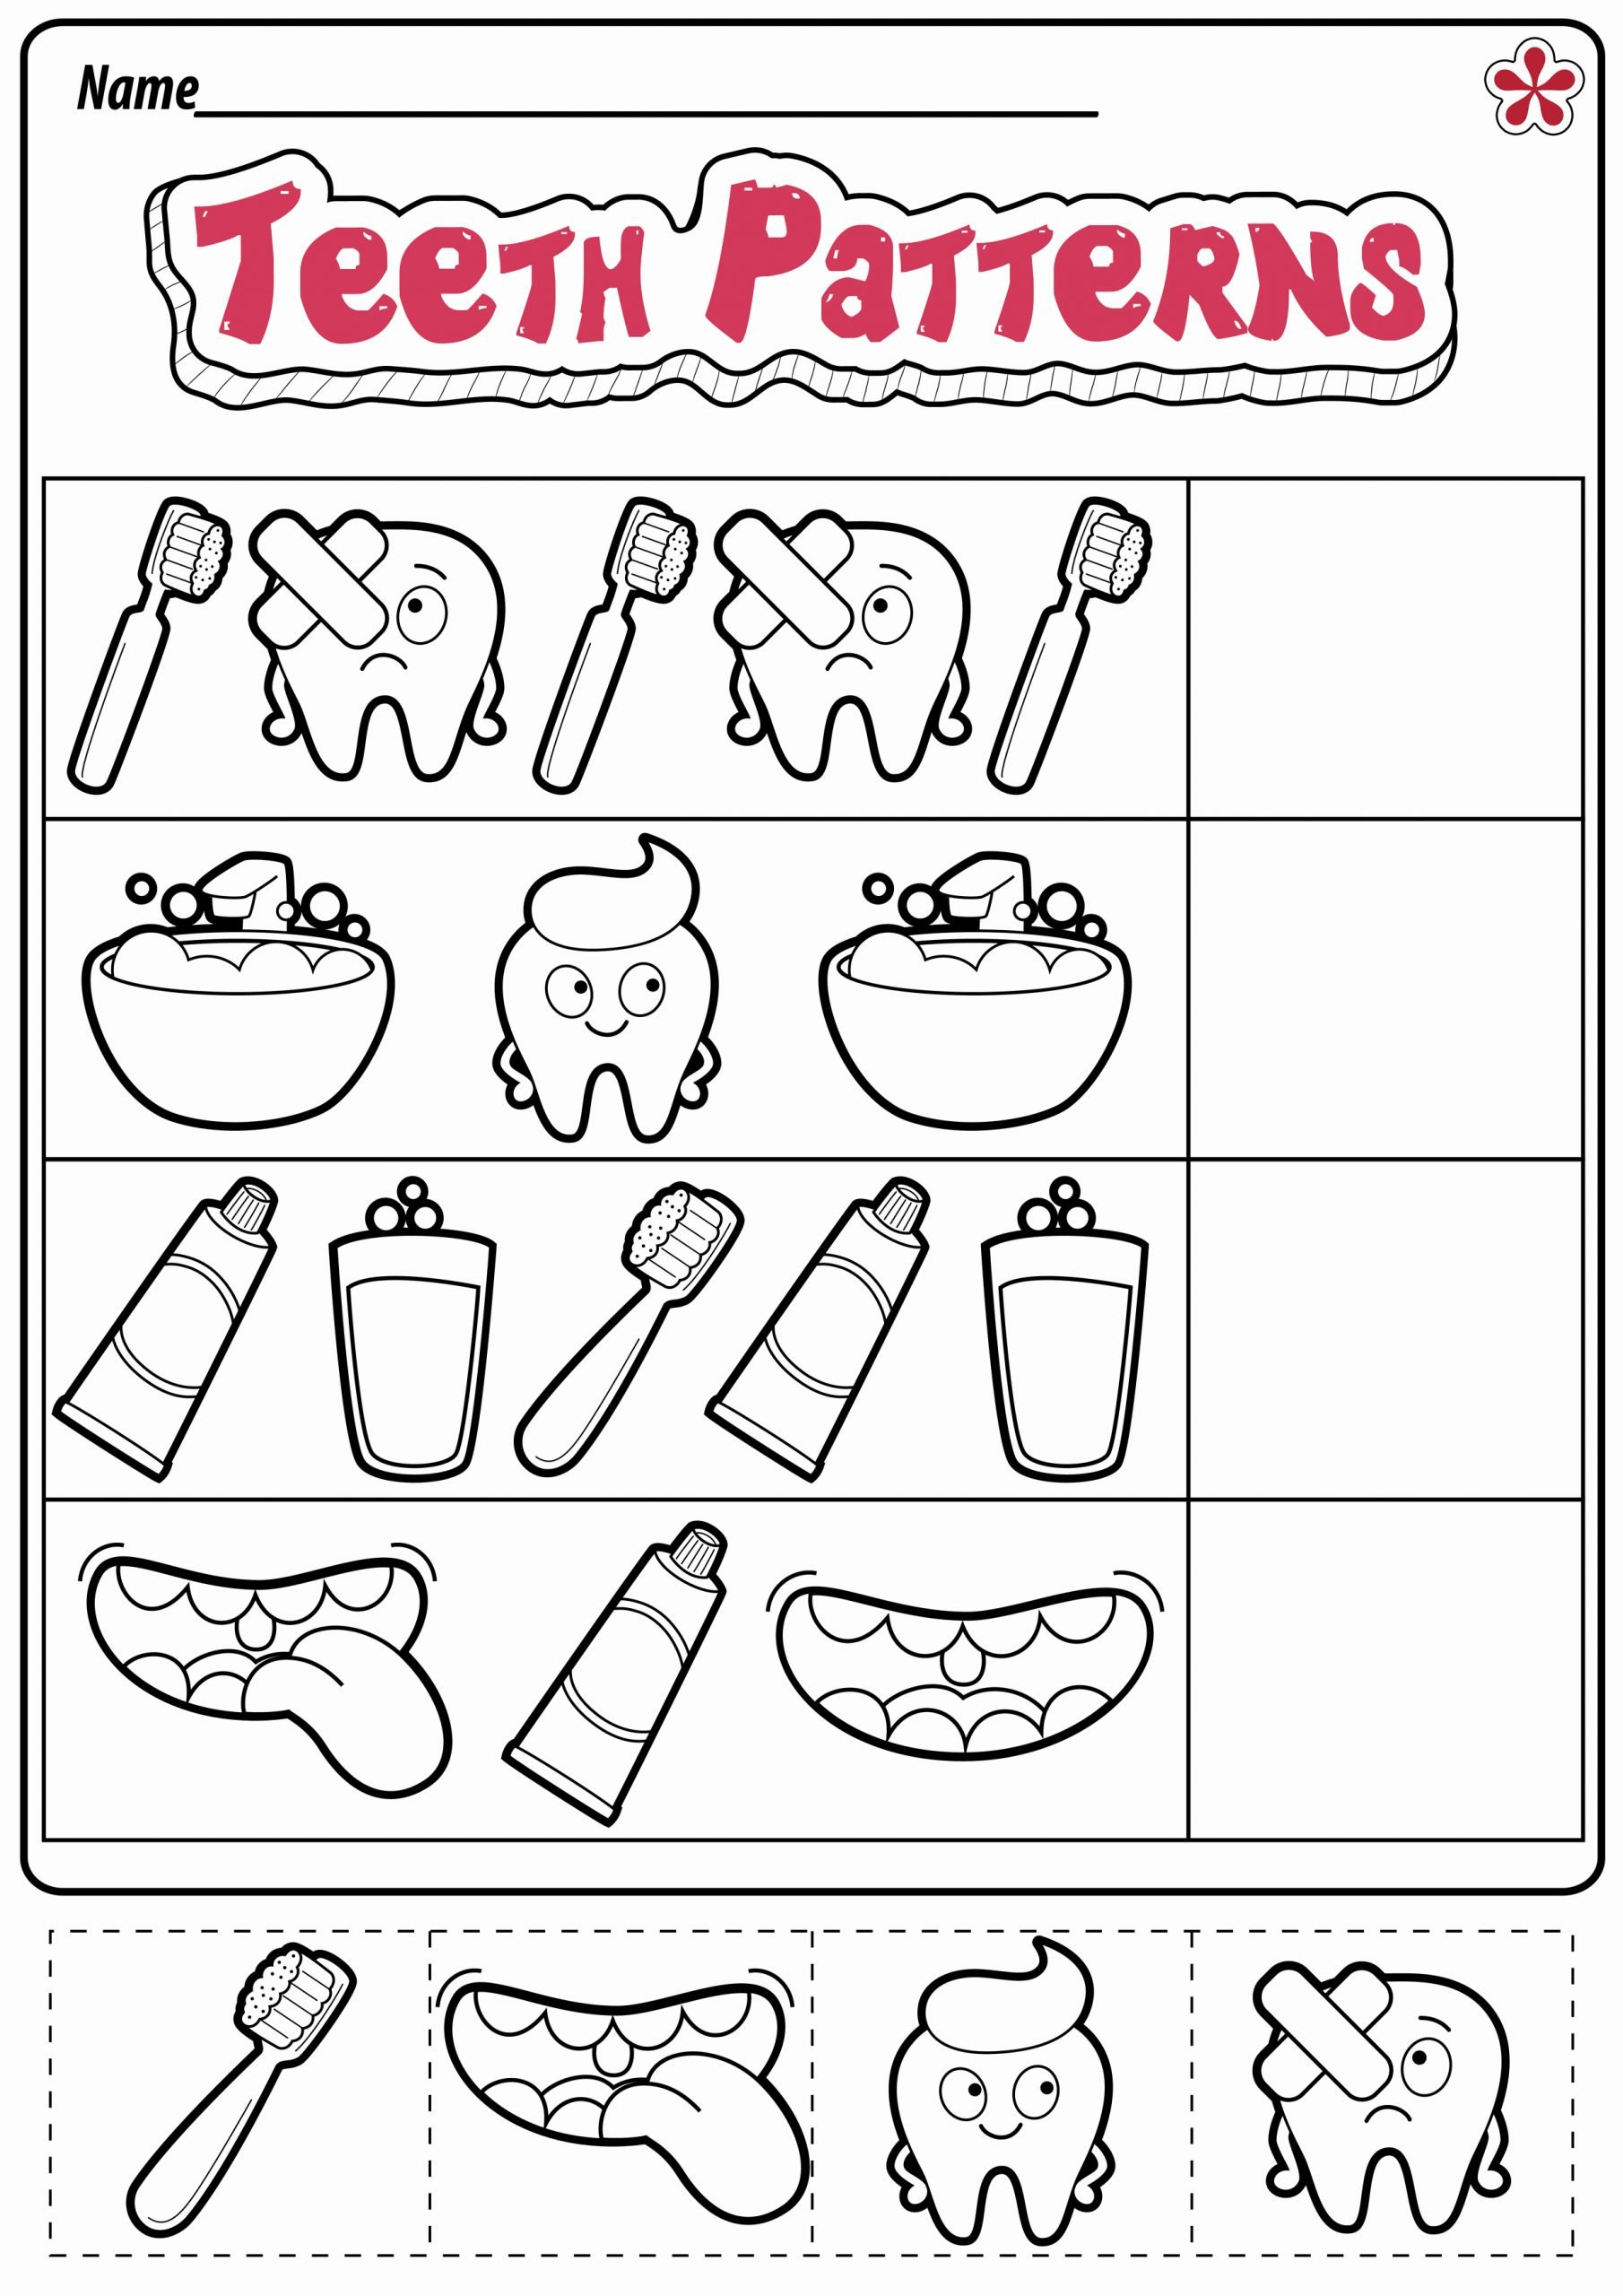 Dental Worksheets for Preschoolers Beautiful Dental Health Worksheet for Preschoolers